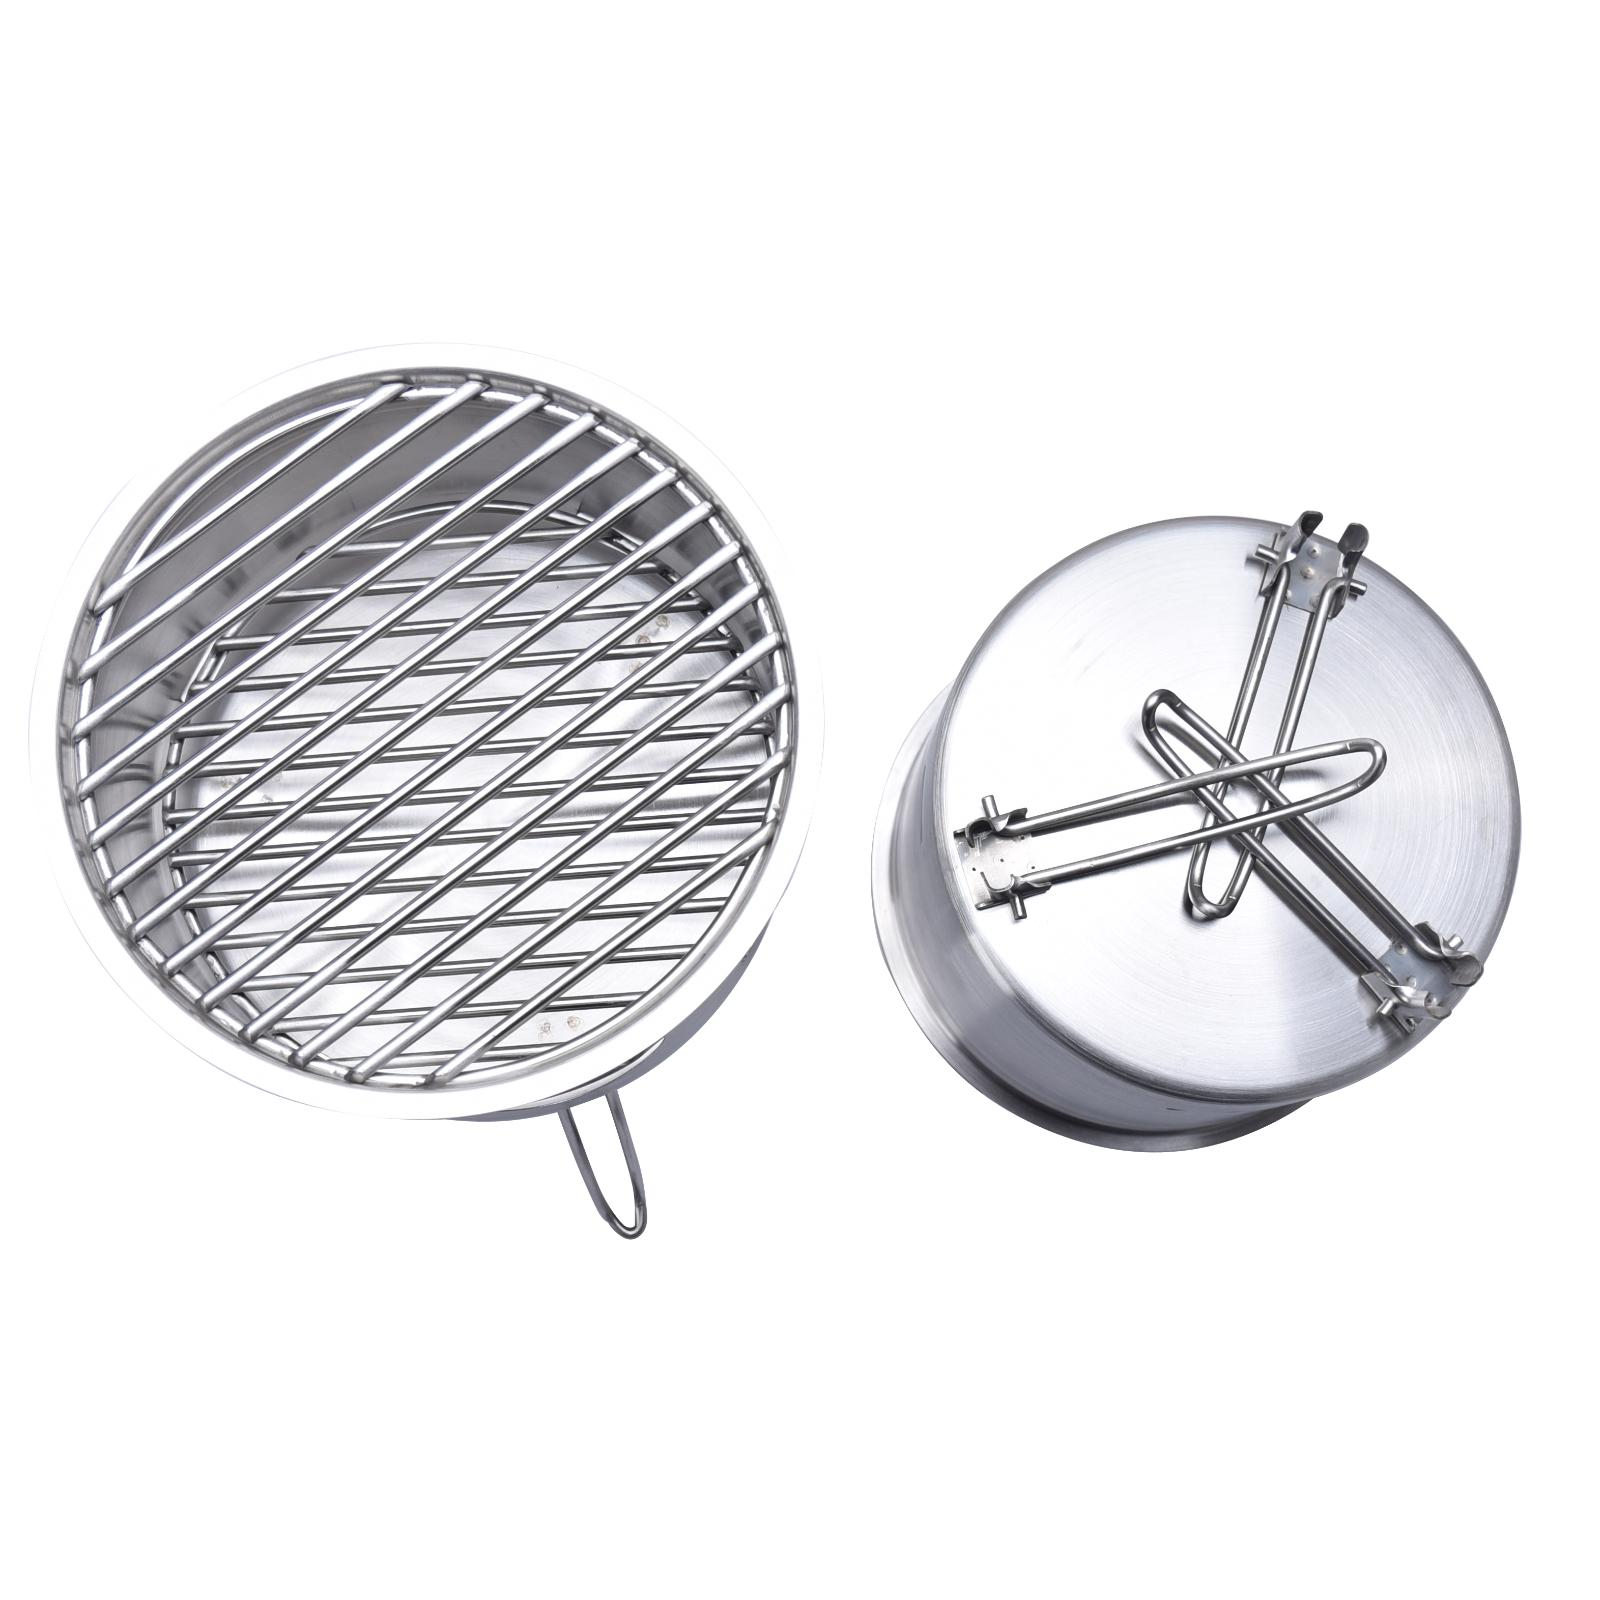 Outdoor Steel Camping BBQ Portable